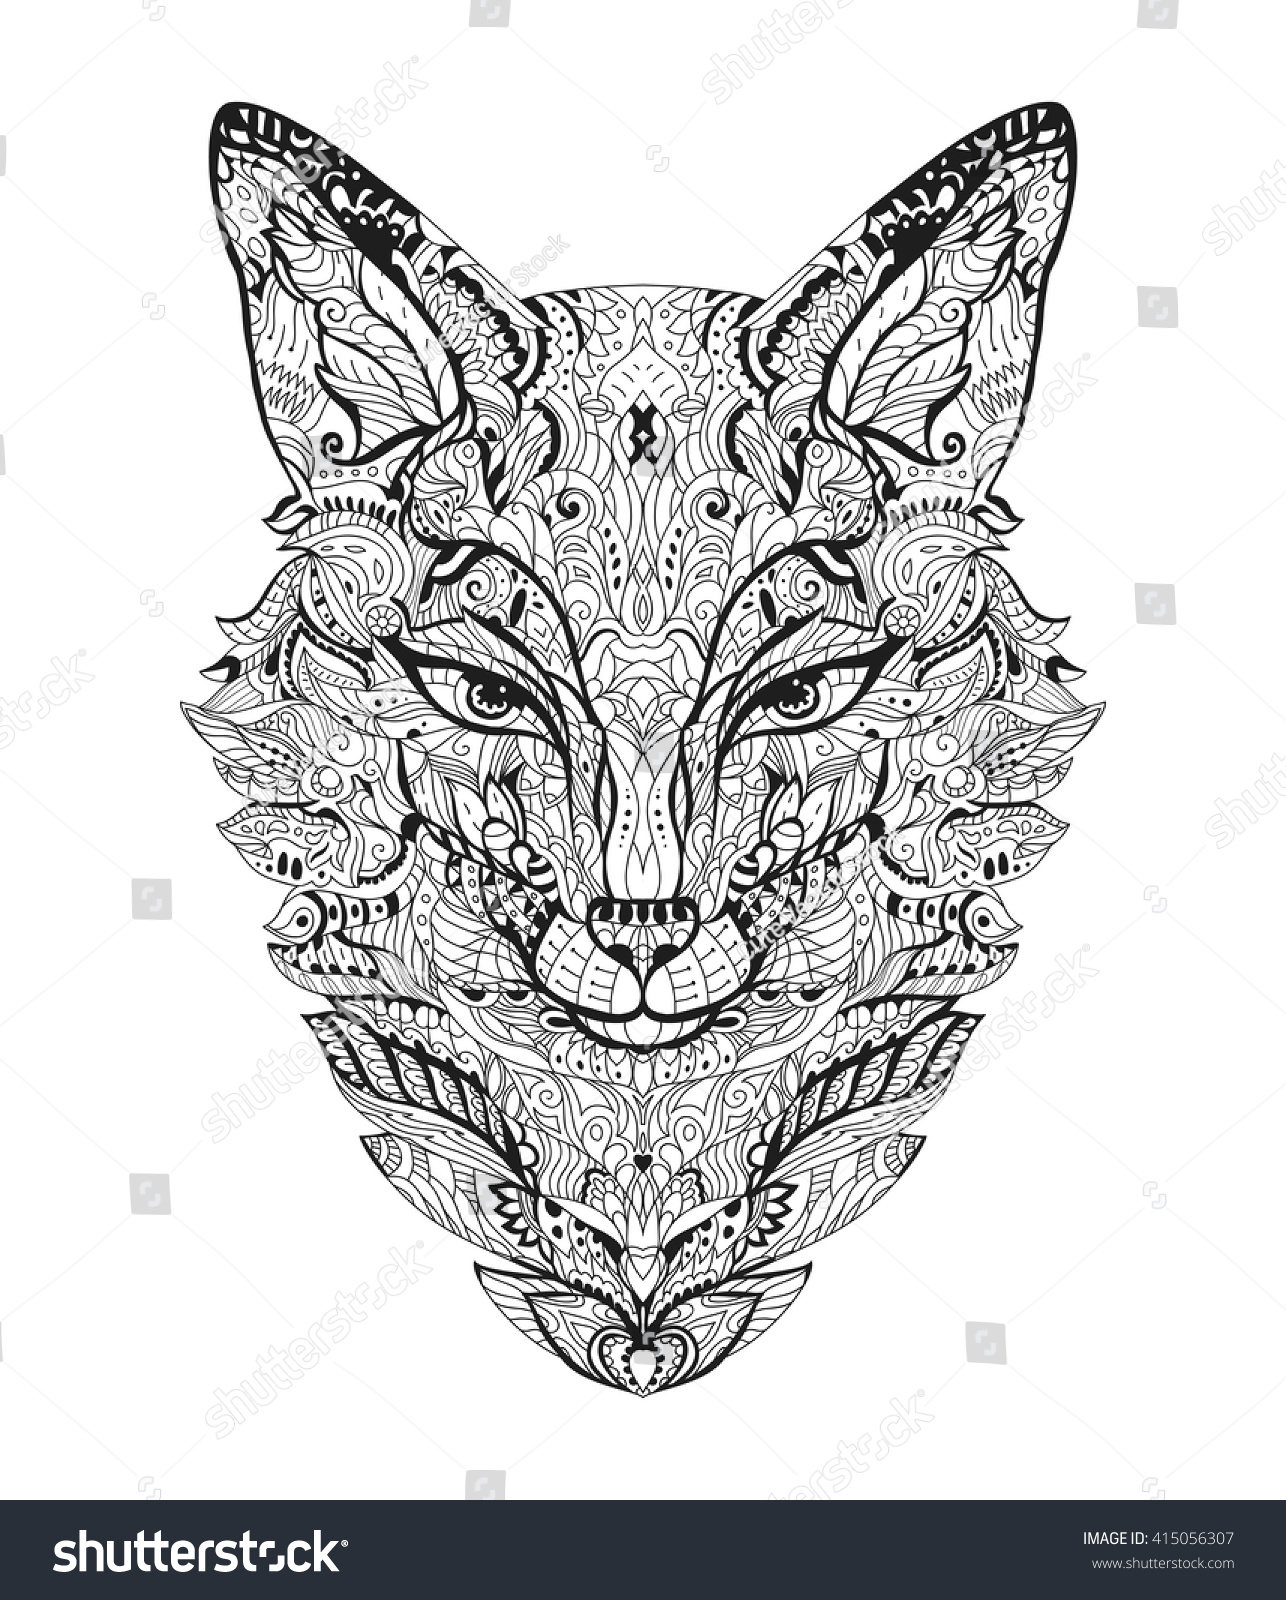 Zen colouring book animals - Zen Art Fox Zentangle Animal Head For The Adult Antistress Coloring Book On White Background